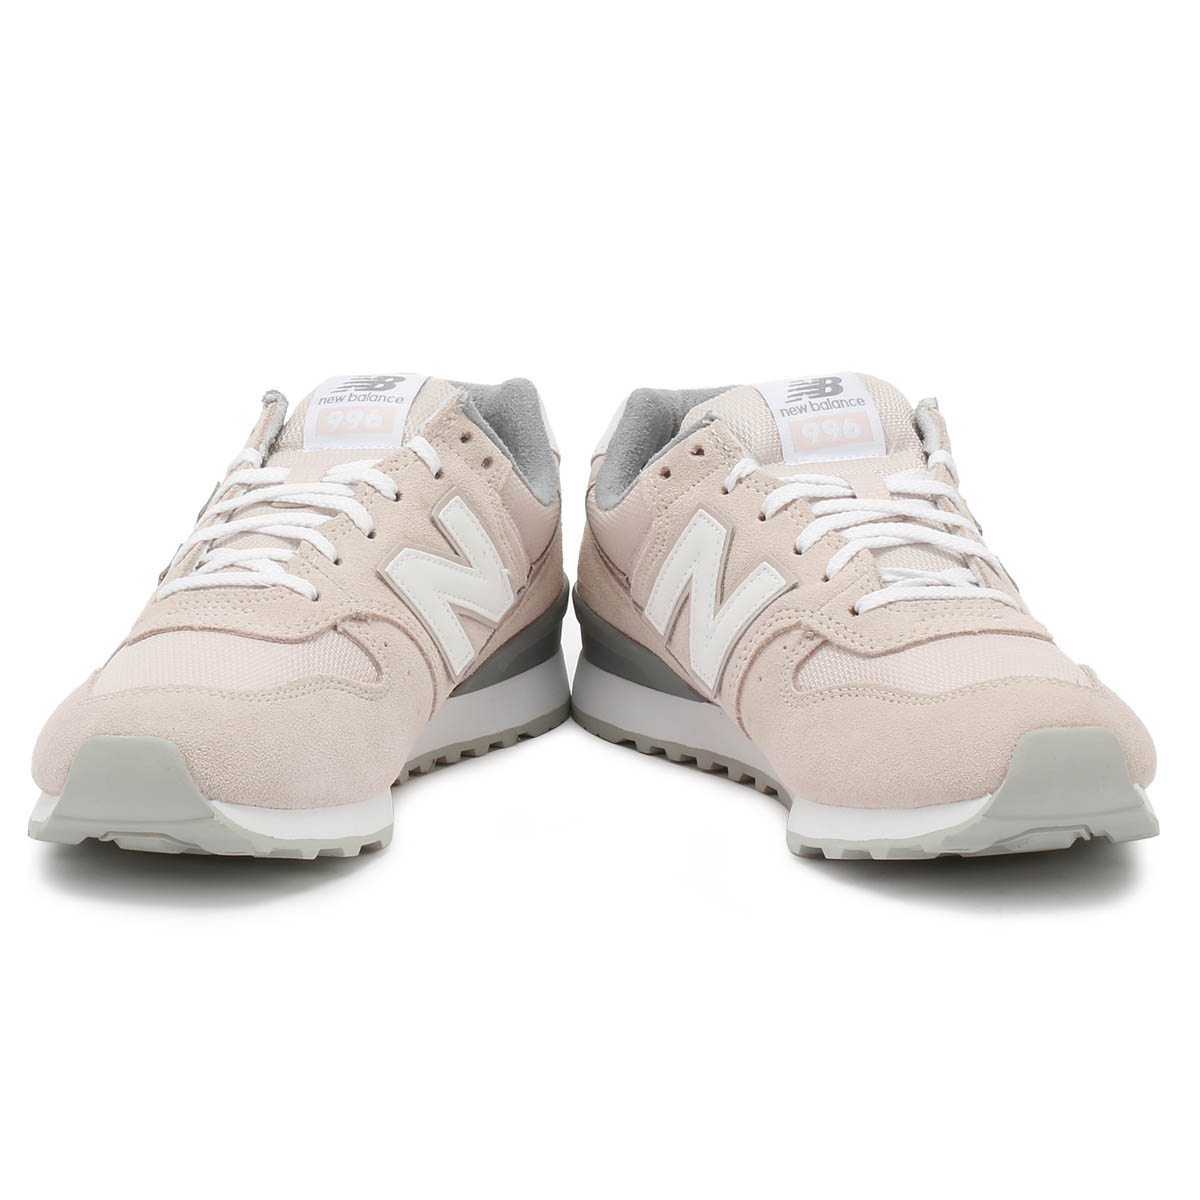 New Balance Damenschuhe Trainers 996 Casual Pink Classic Lace Up Casual 996 Running Schuhes 8f2c44